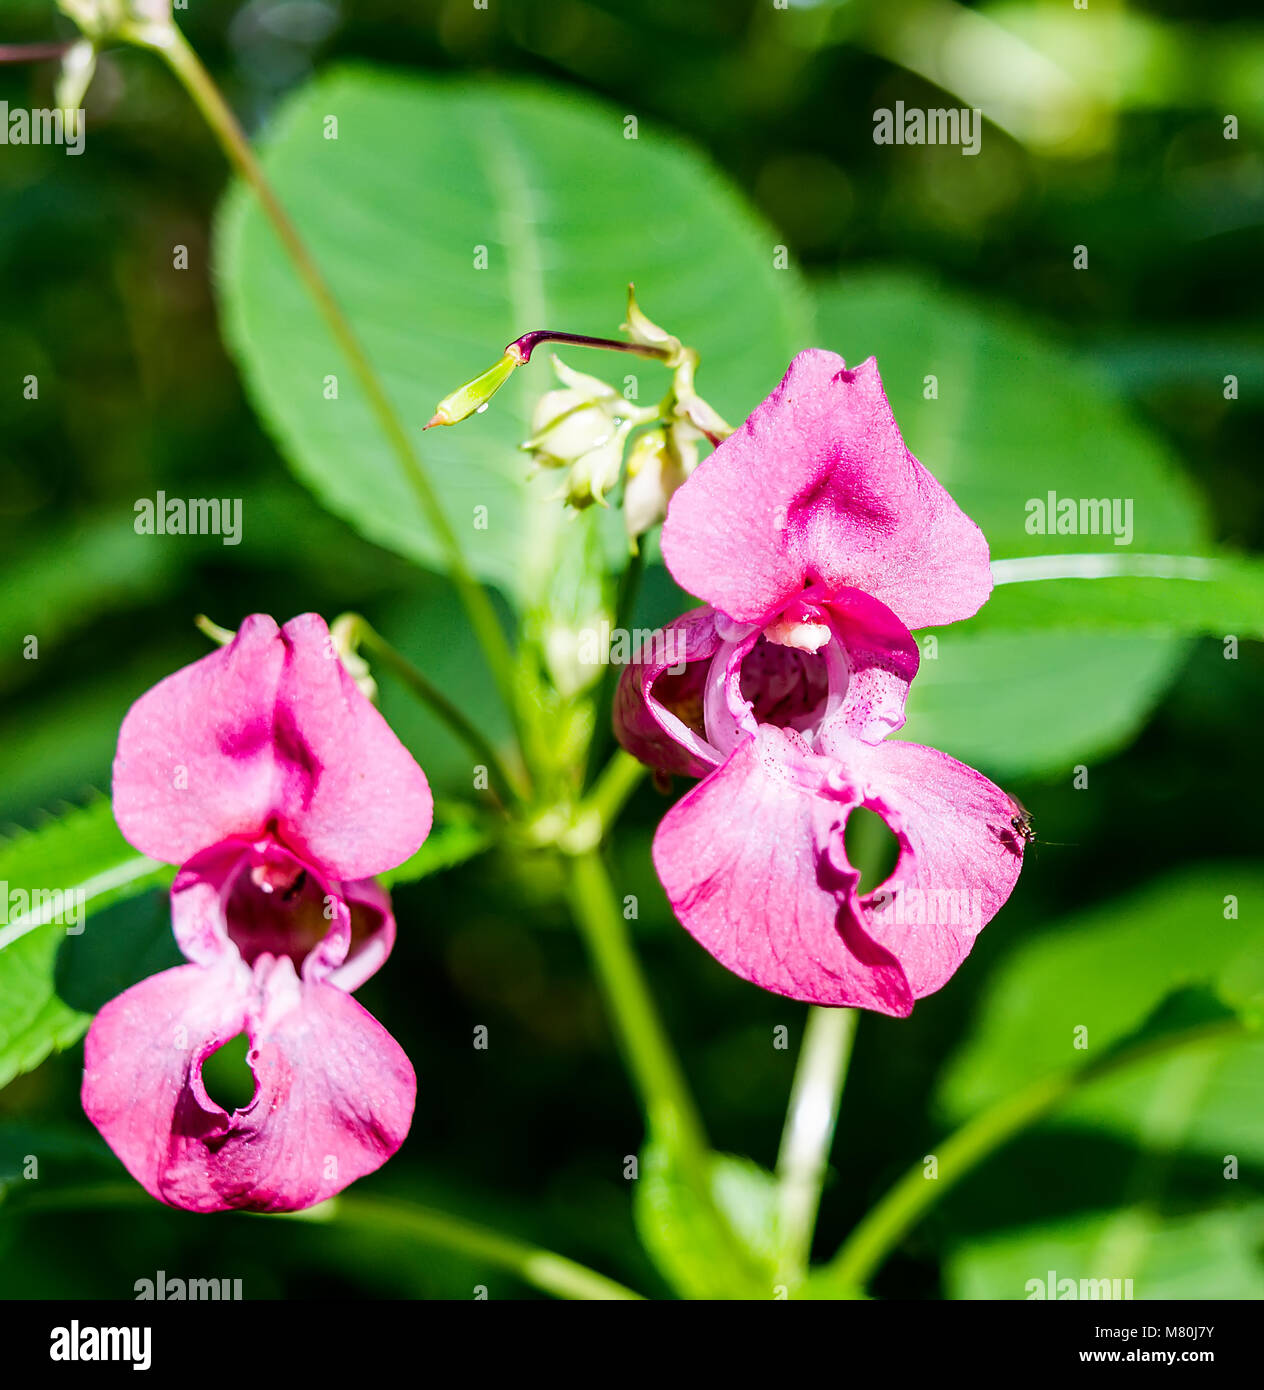 Close-up of pink Himalayan Balsam flowers Stock Photo